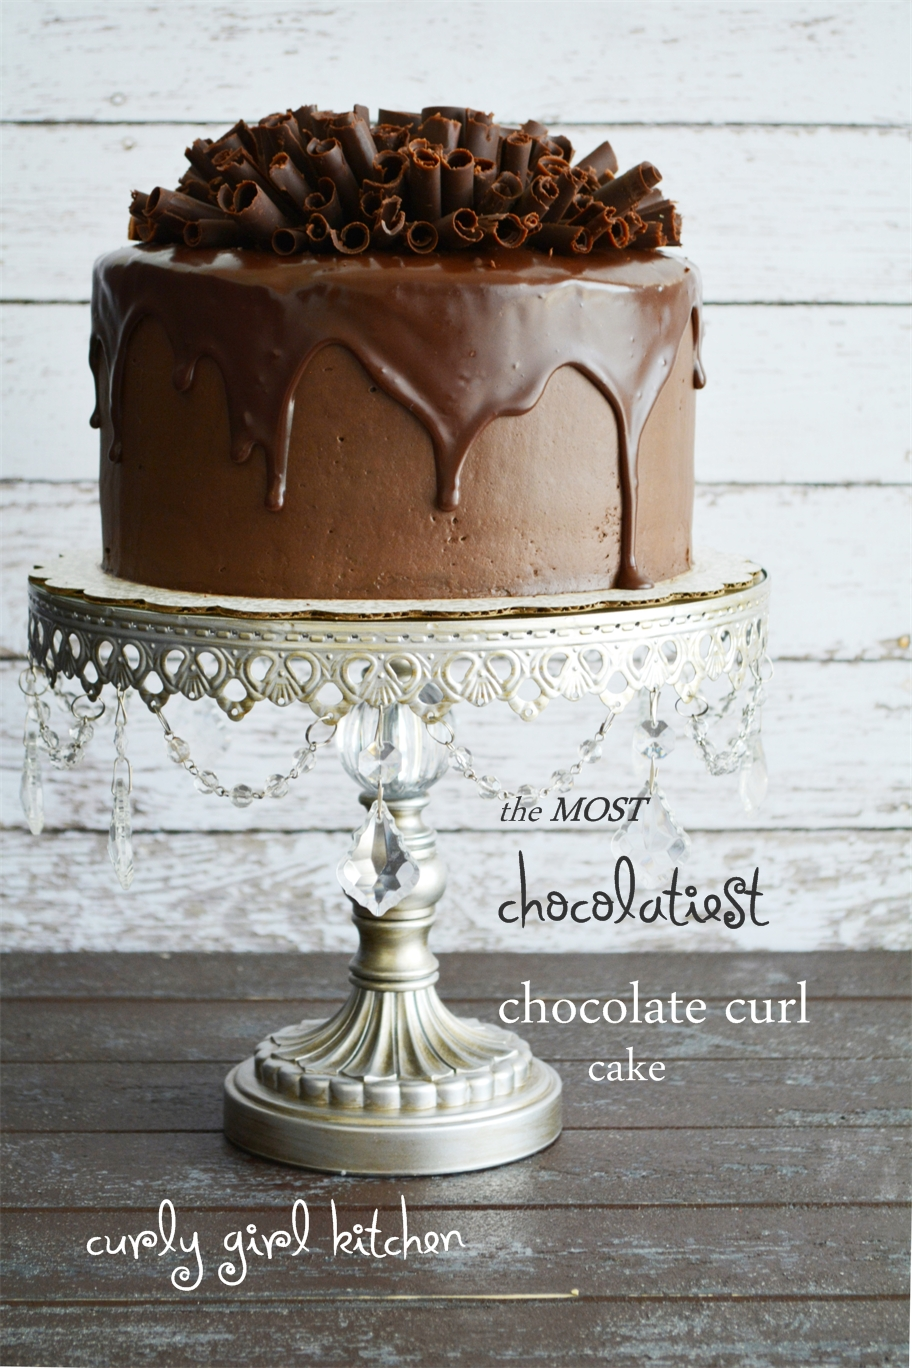 The Most Beautiful Child In The World Is Now A Teenager: Curly Girl Kitchen: The Most Chocolatiest Chocolate Curl Cake